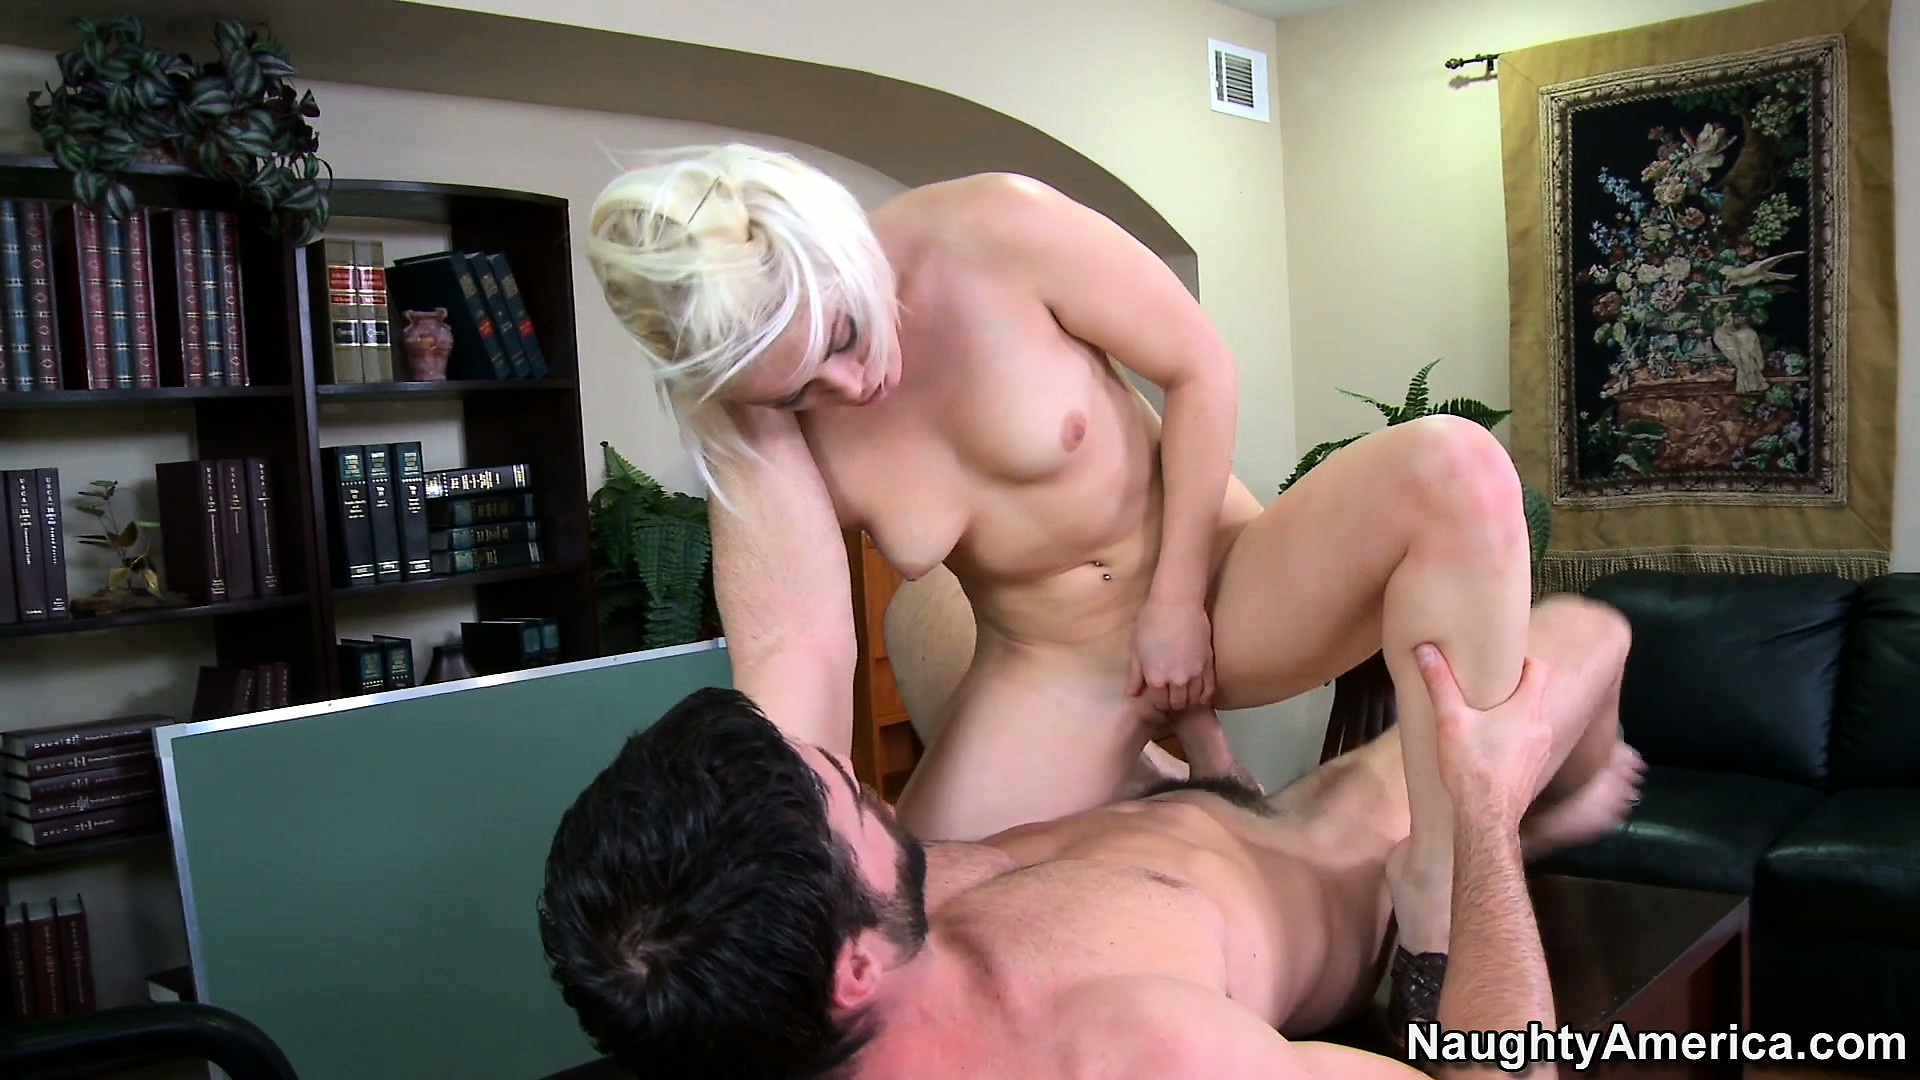 Porn Tube of Hottie Ash Hollywood Has A Hankering For His Hunk Of Hot Meat In Her Pie Hole